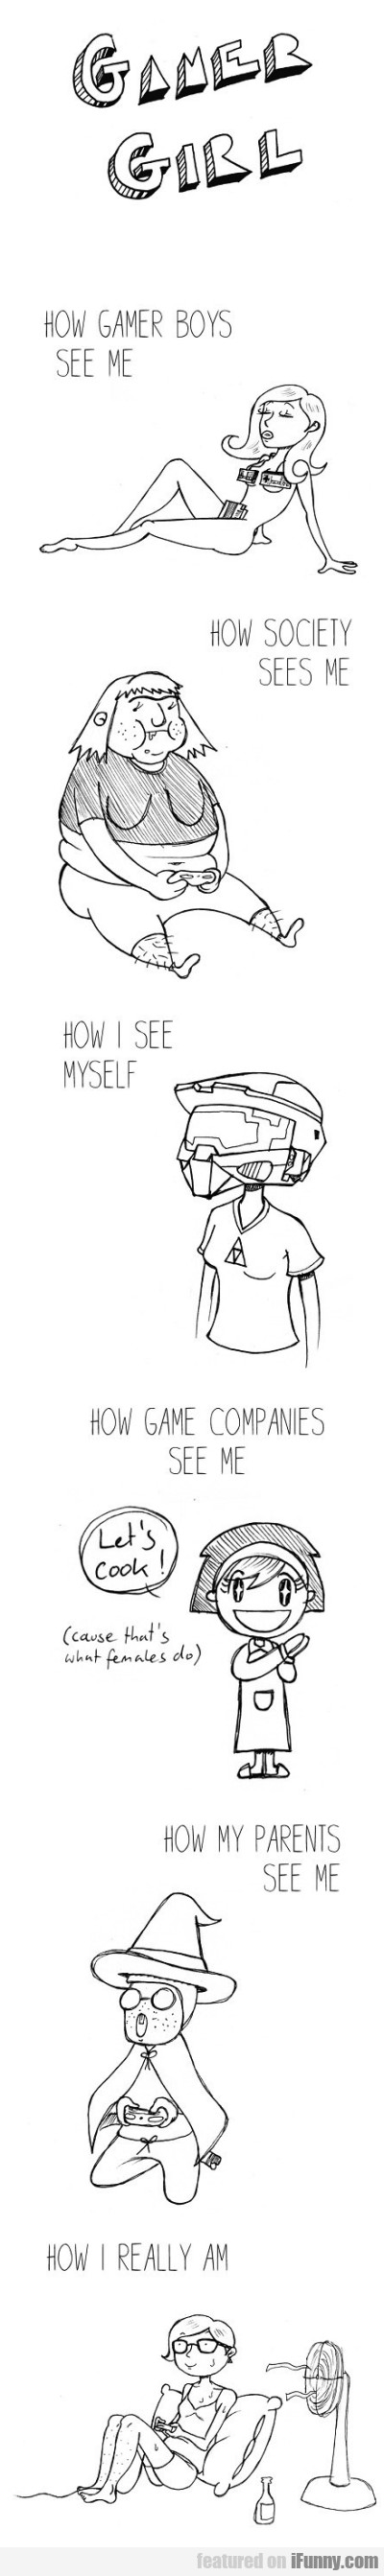 Gamer Girl. How Gamer Boys See Me